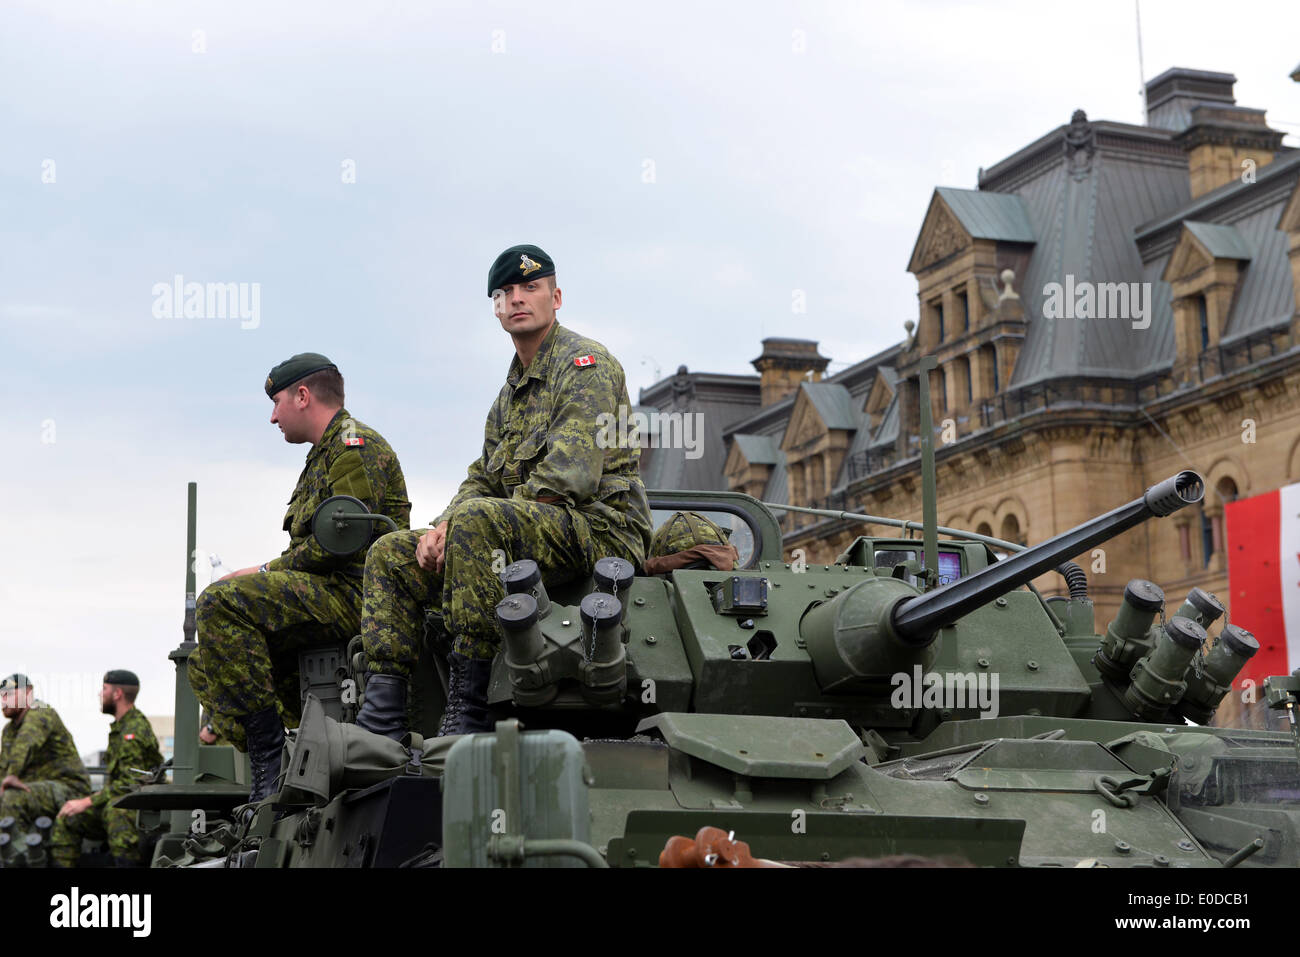 Soldiers who served in the Canadian Forces in Afghanistan were honored on Parliament Hill during national Day of Honour May 9, 2014 in Ottawa, Canada - Stock Image